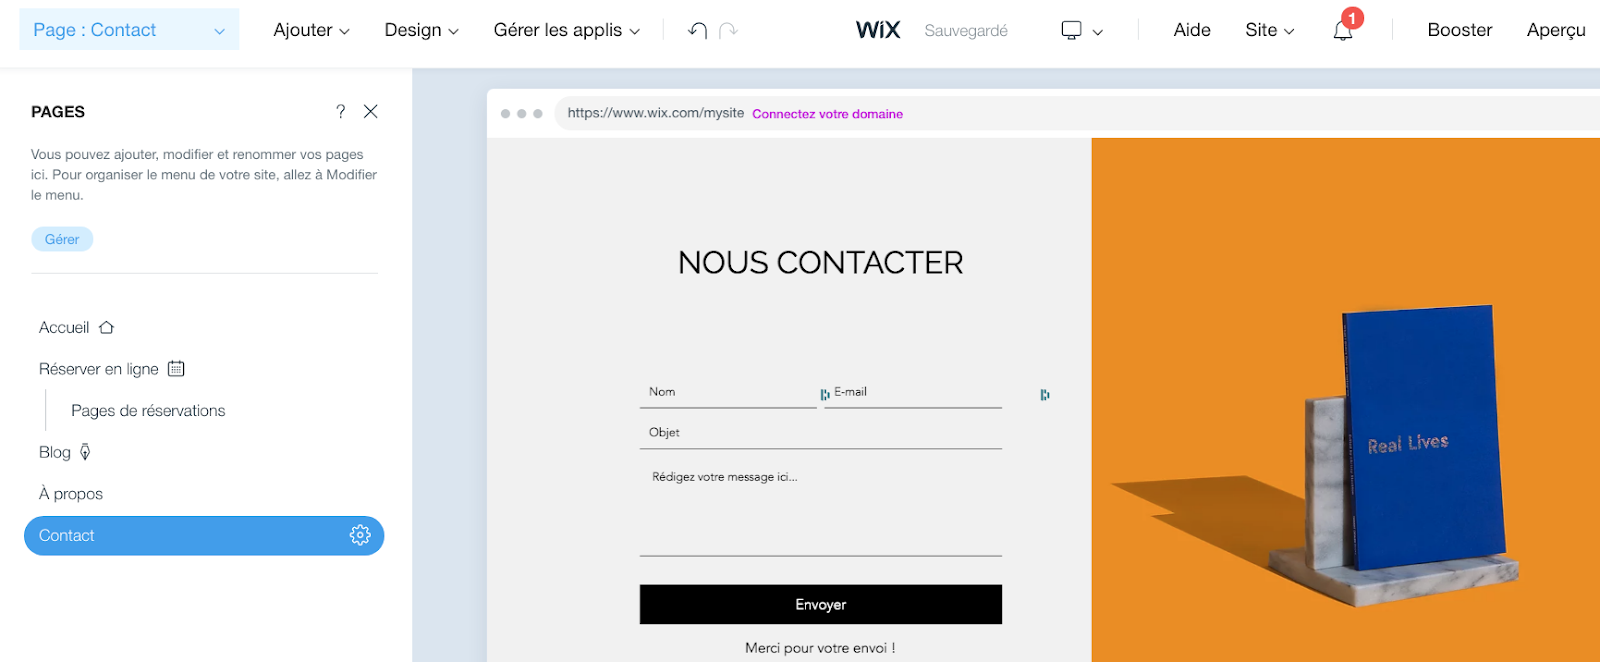 Optimiser page contact Wix